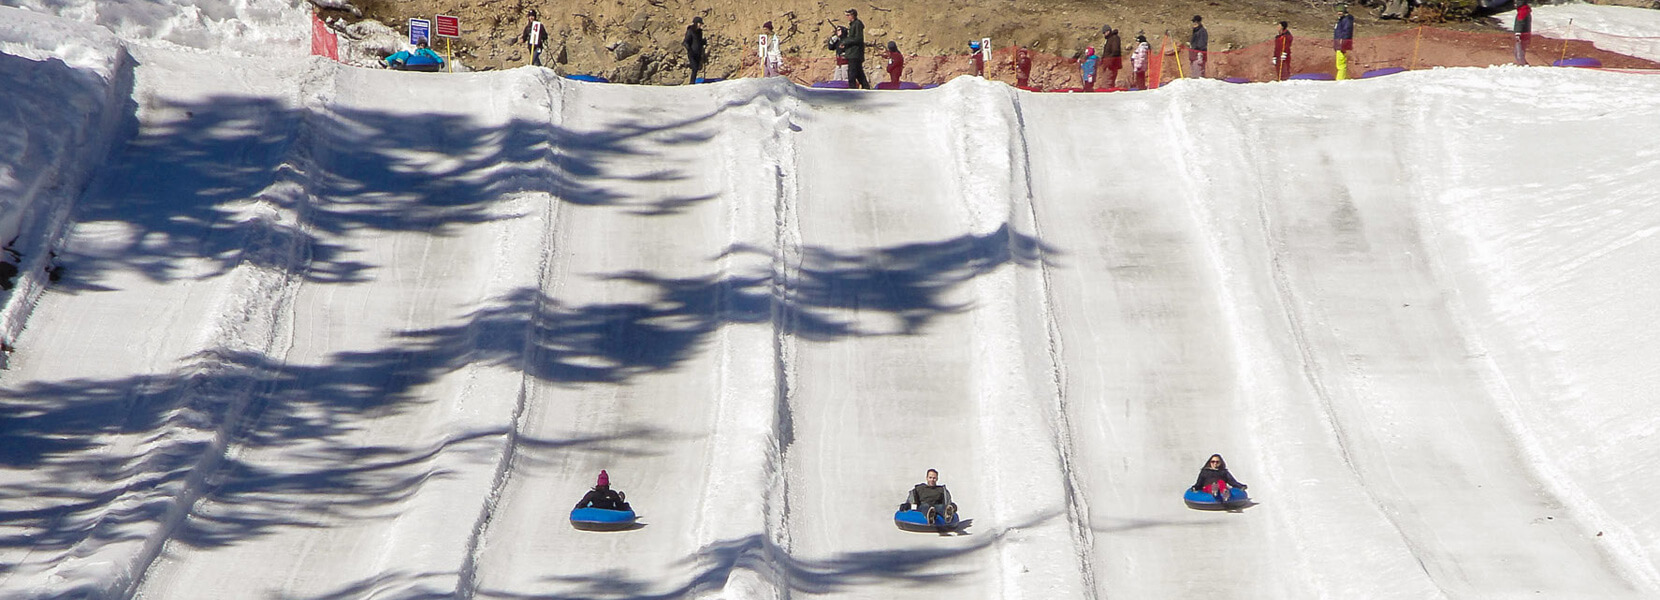 Tubing at Mammoth Mountain